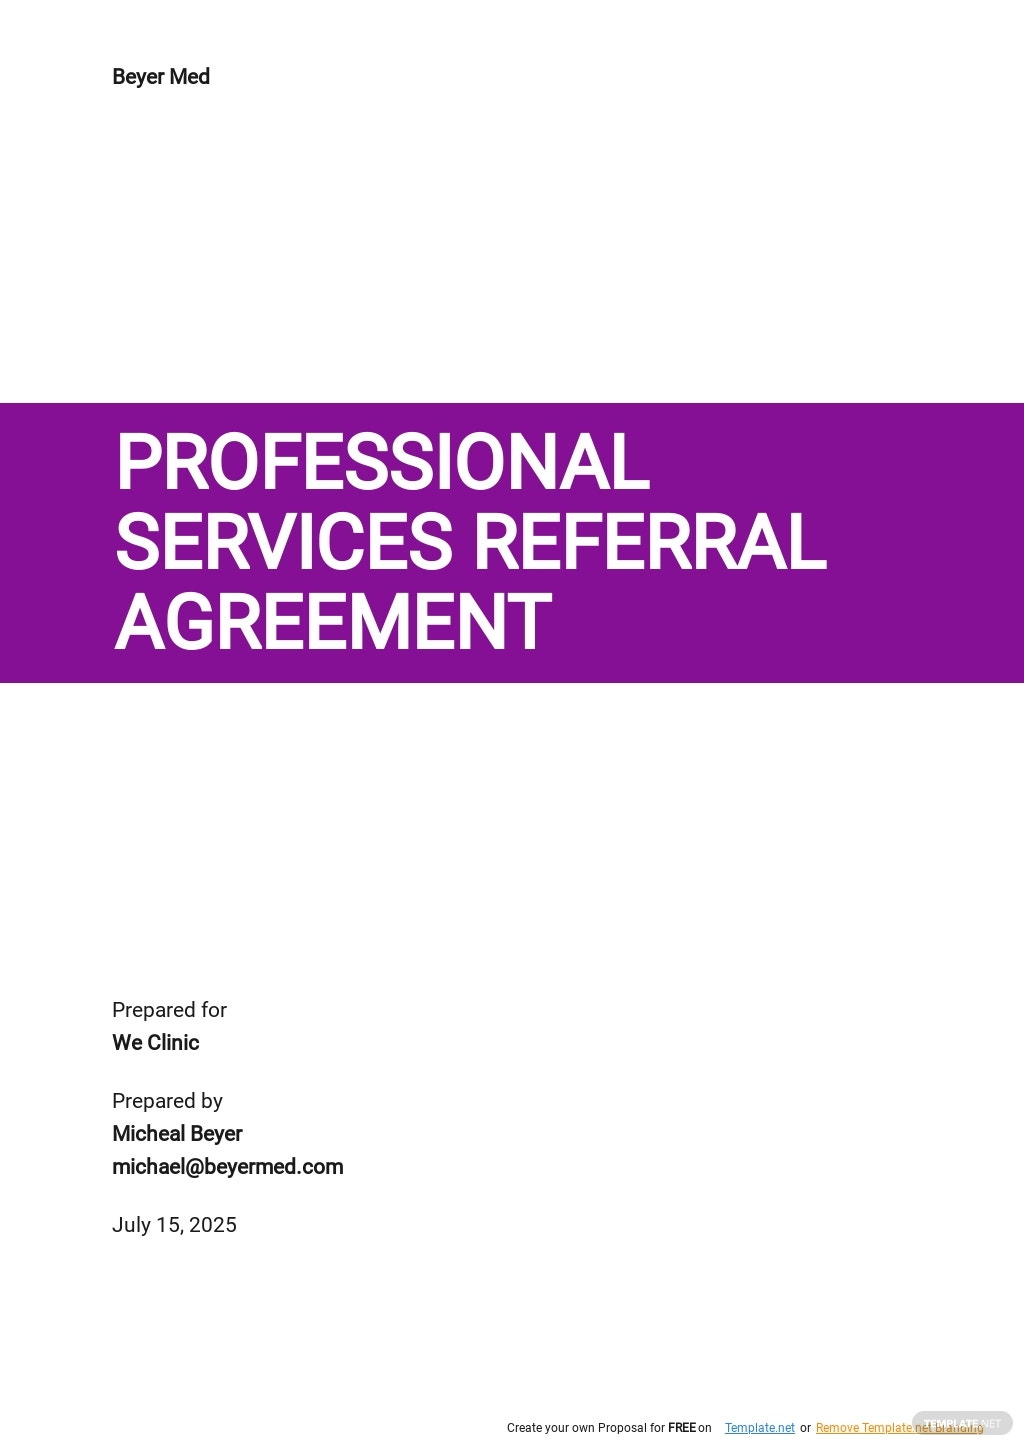 Professional Services Referral Agreement Template.jpe